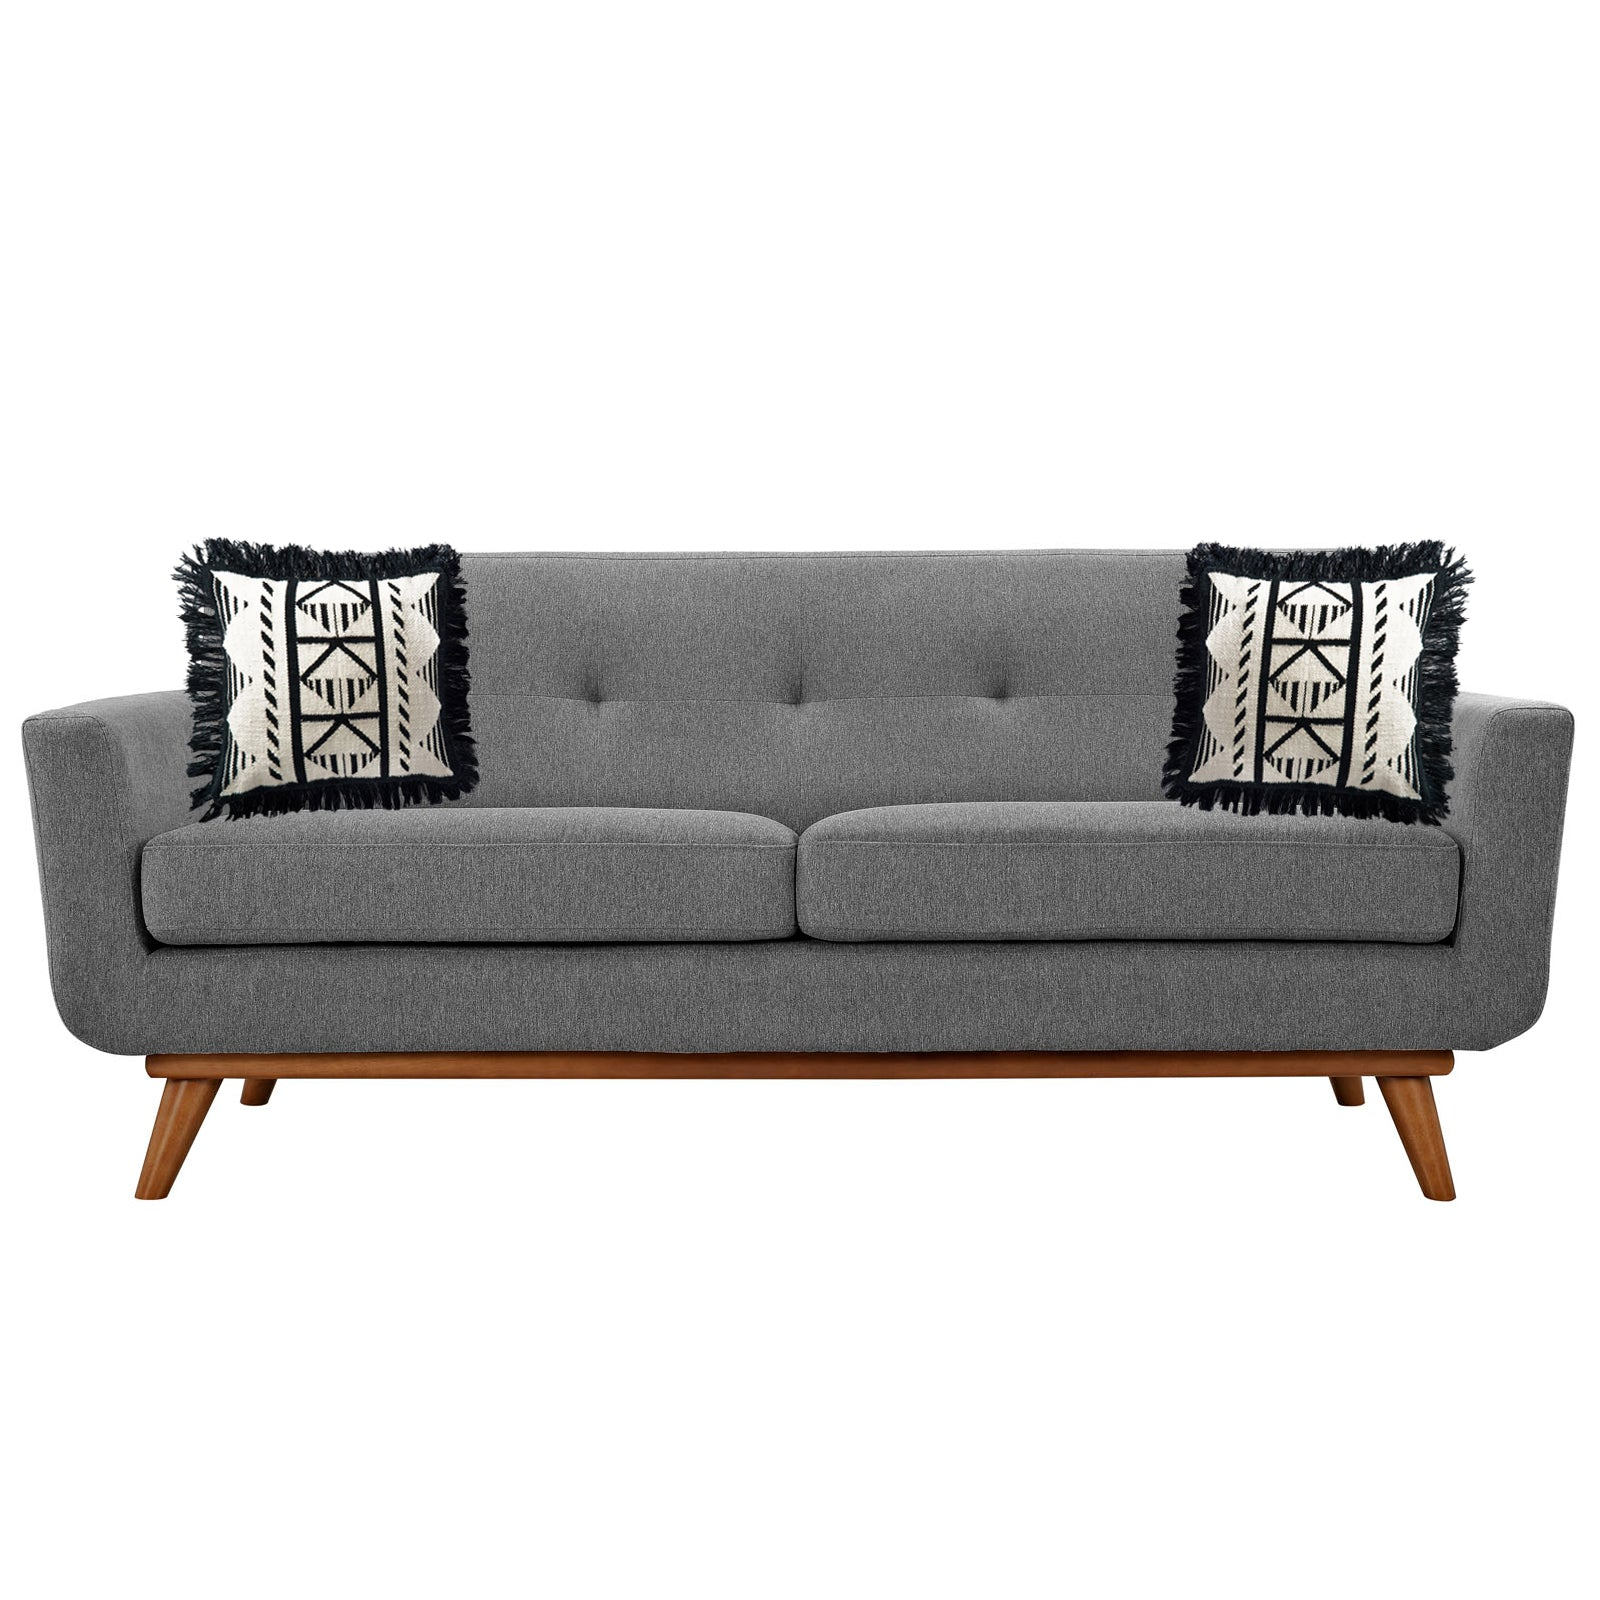 living en loveseat nude hk sofa seater retro sofas